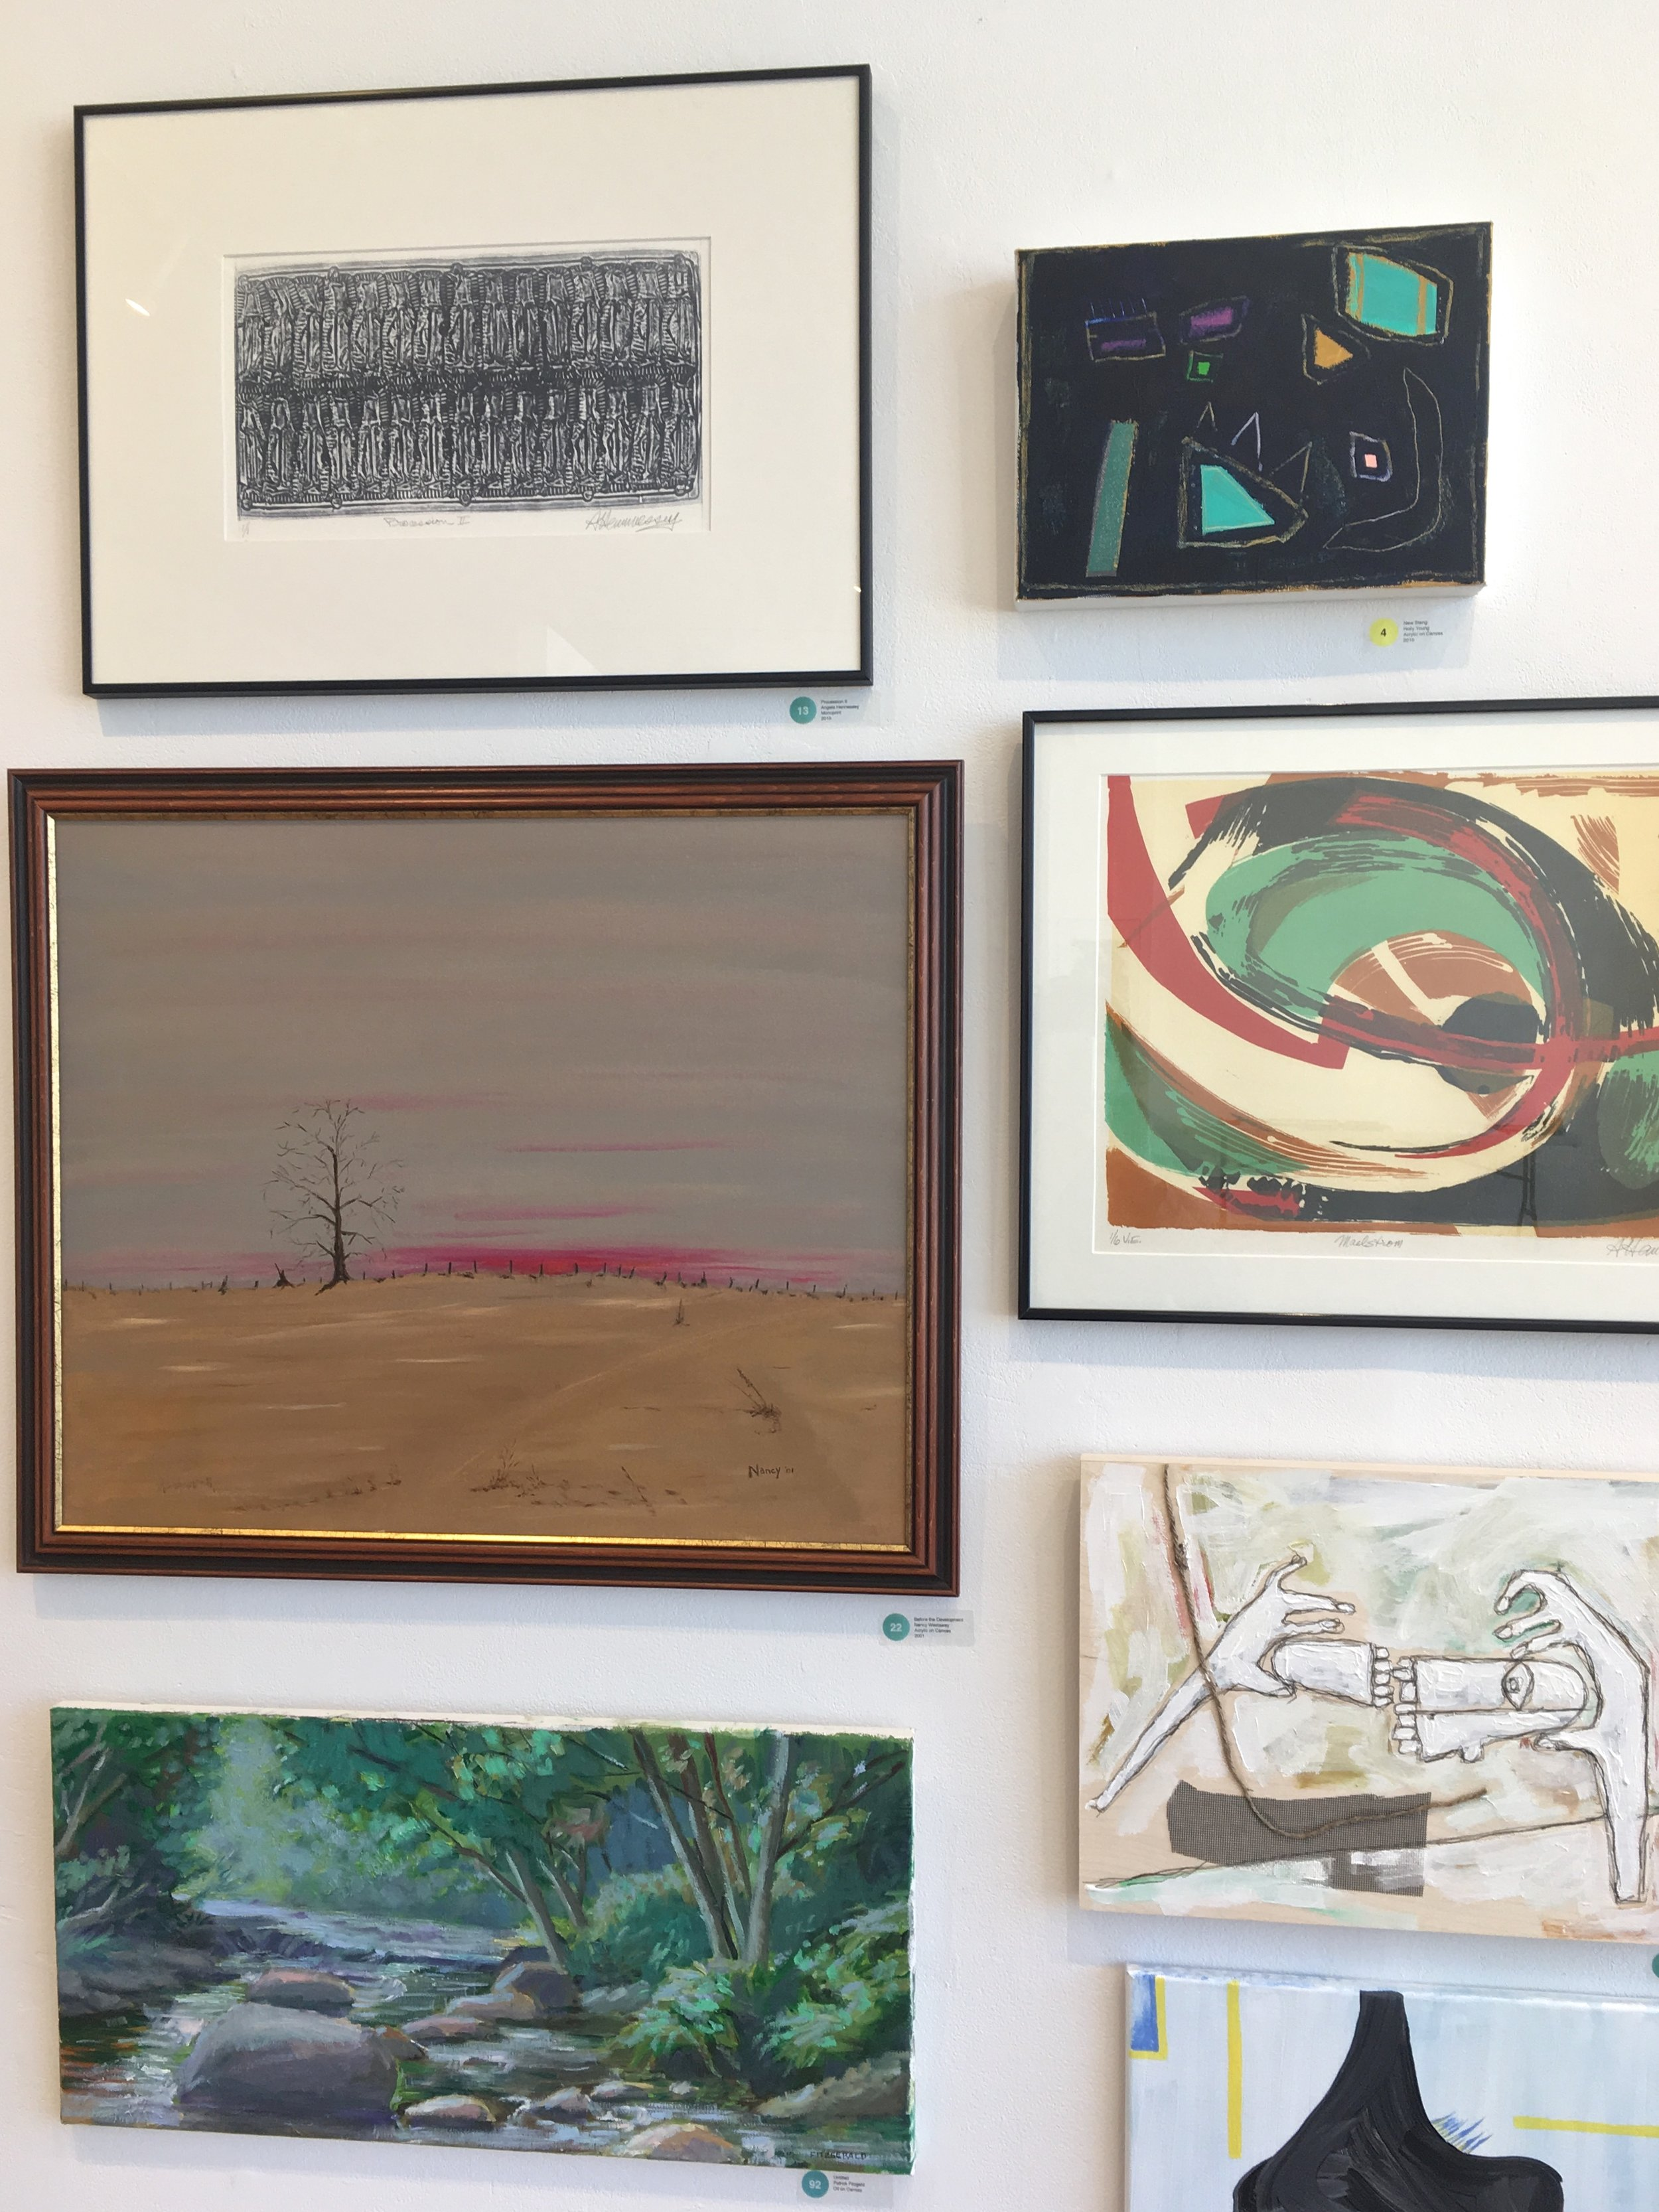 One of my painting's on the top right.